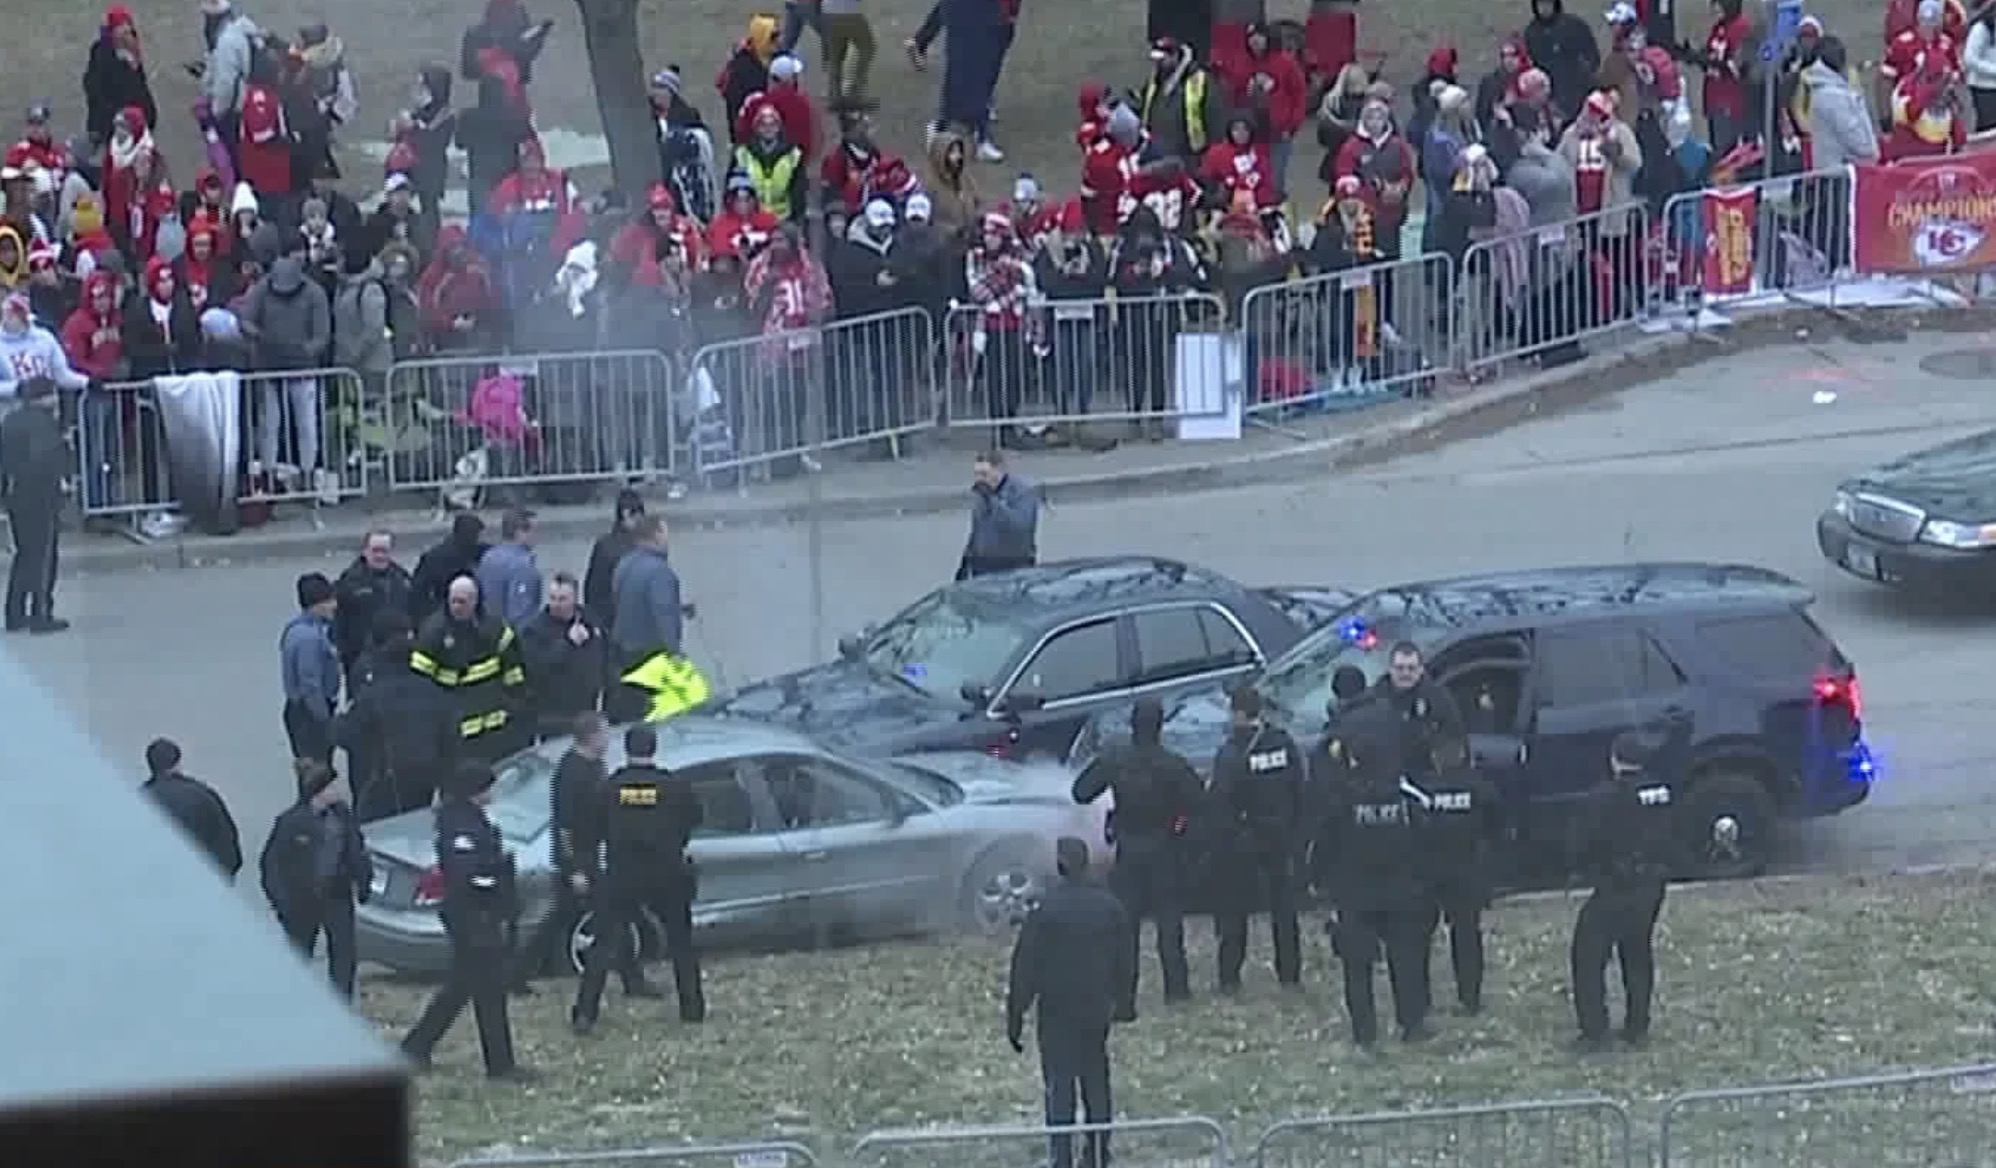 Car crashes through barricades at Chiefs Super Bowl parade in Kansas City